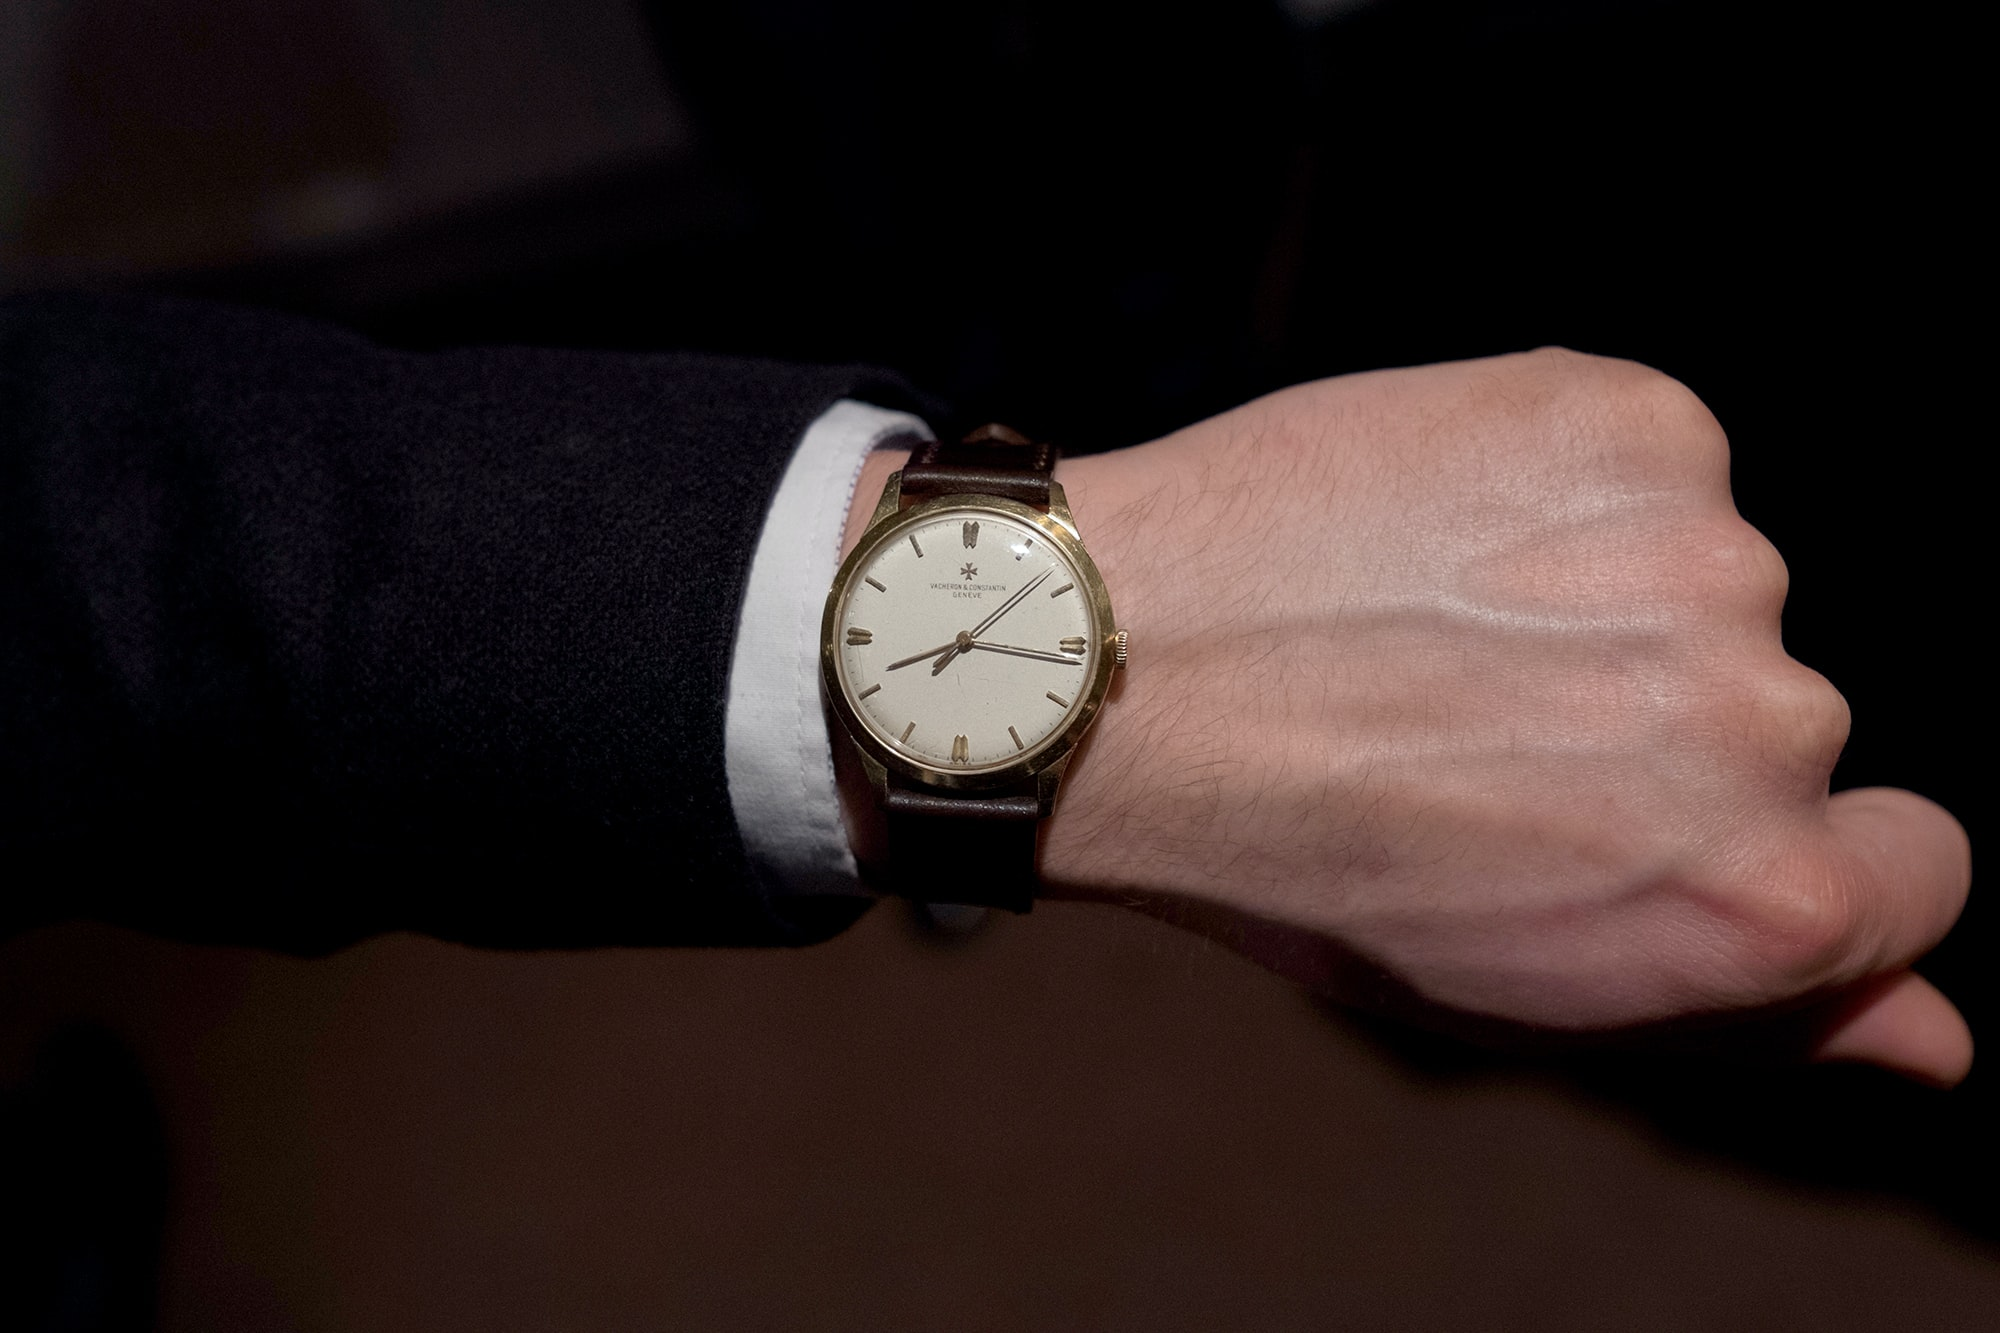 Photo Report: Watch Spotting At The HODINKEE Meet-Up In London (Plus Our Holiday 2016 Pop-Up At Harrods) Photo Report: Watch Spotting At The HODINKEE Meet-Up In London (Plus Our Holiday 2016 Pop-Up At Harrods) Hodinkee event 29 nov 2016 77